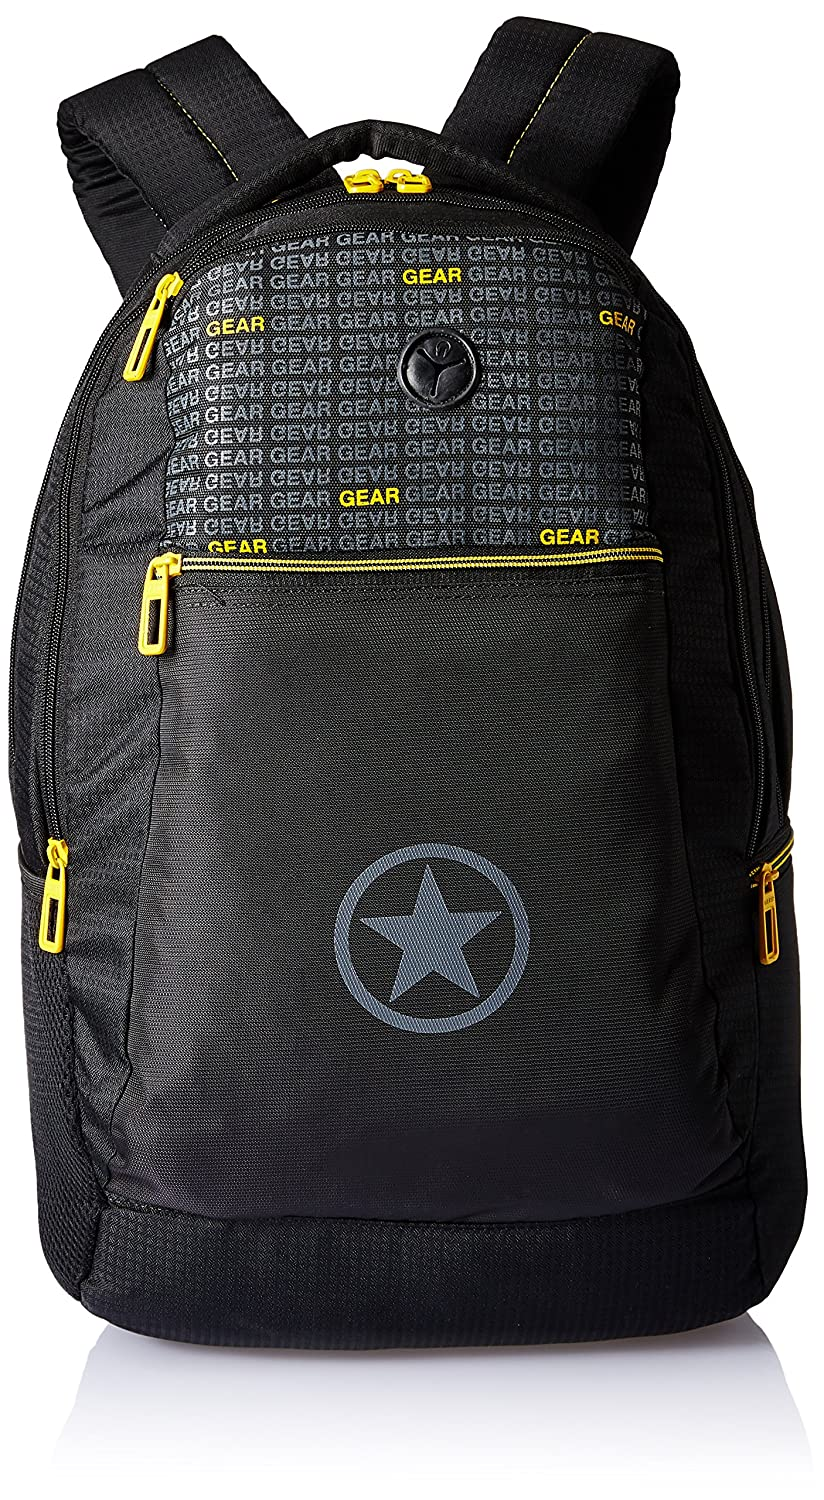 Gear 26 Ltrs Black and YellowLaptop Bag (METRO ECO LBP 2)